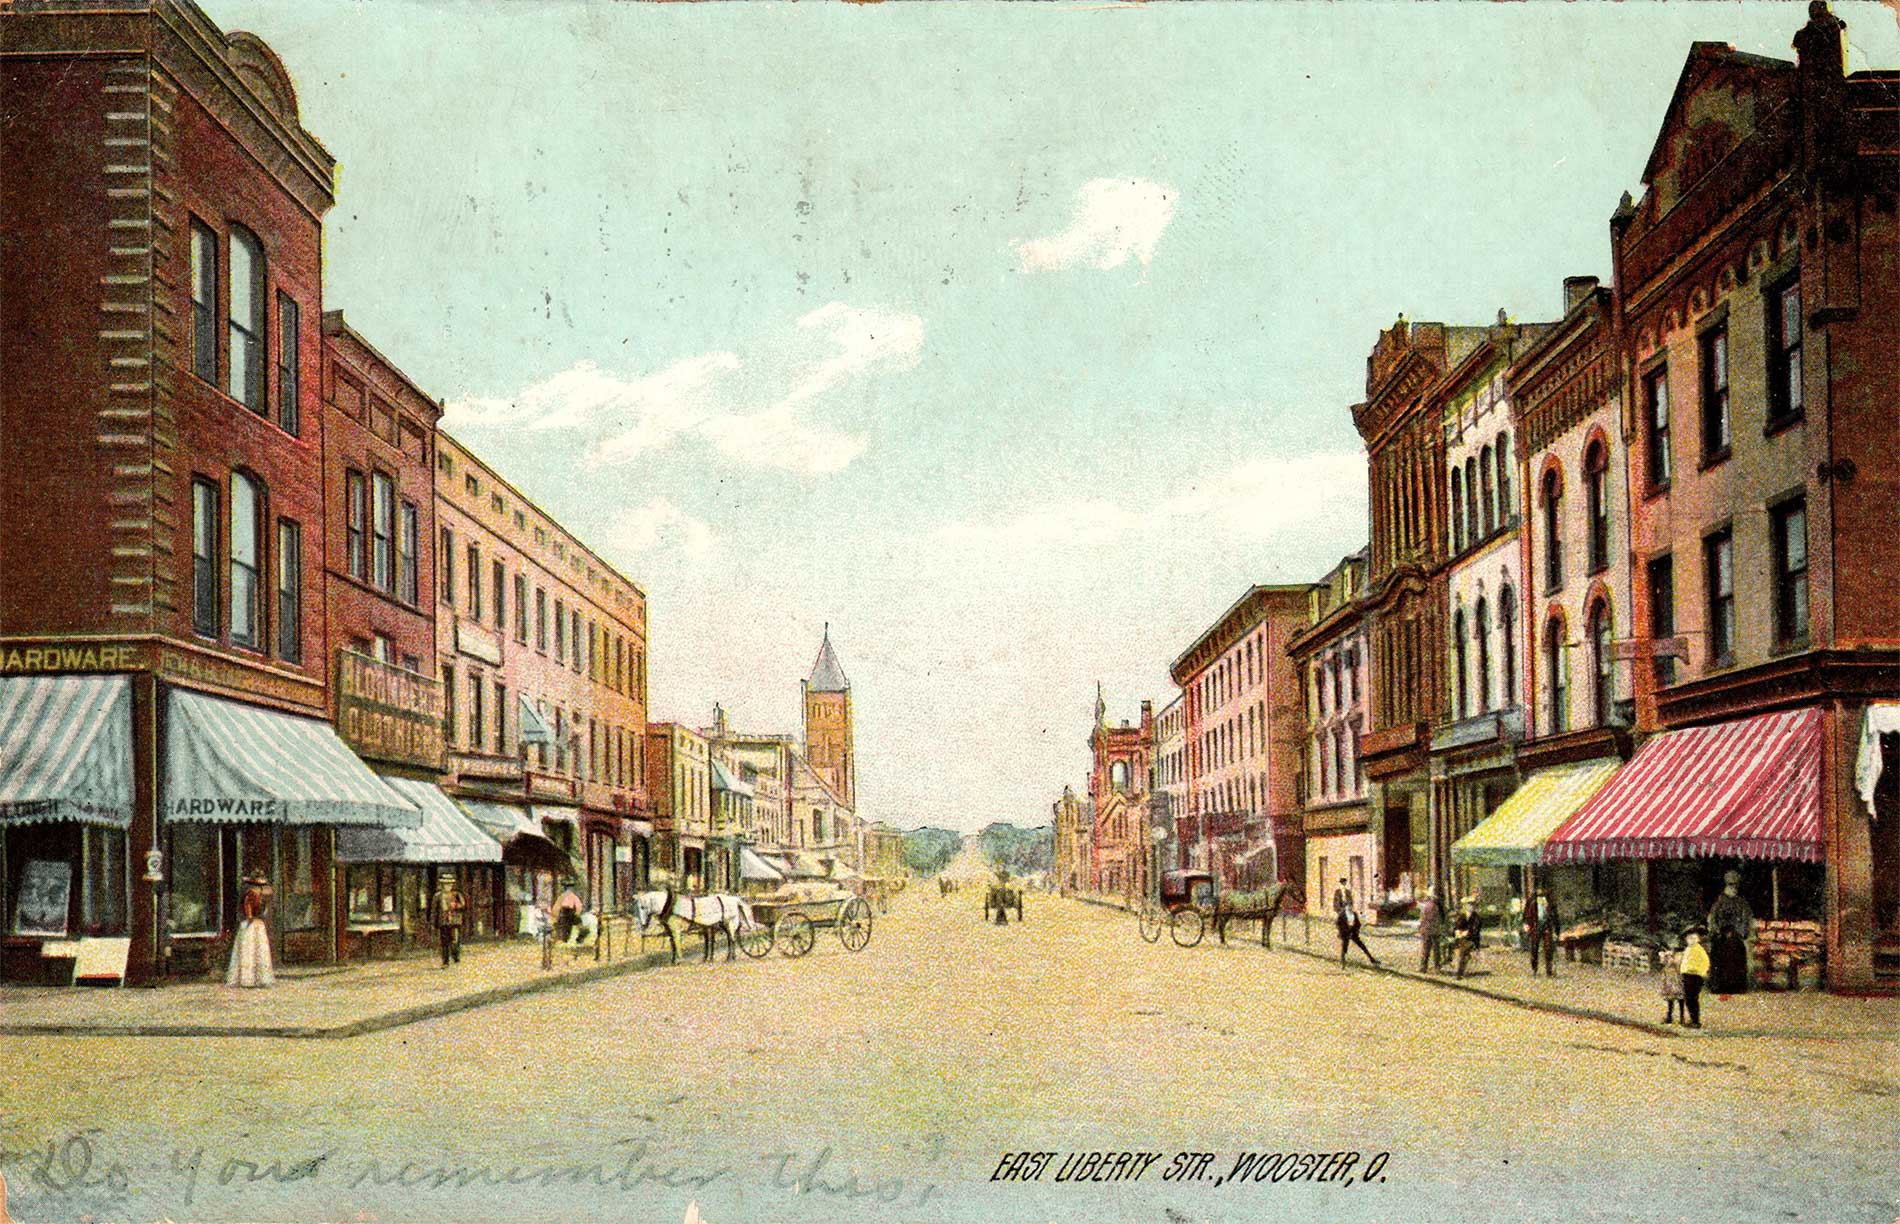 fig. 3 _ East Liberty Street looks much today as it did in this early 20th century view